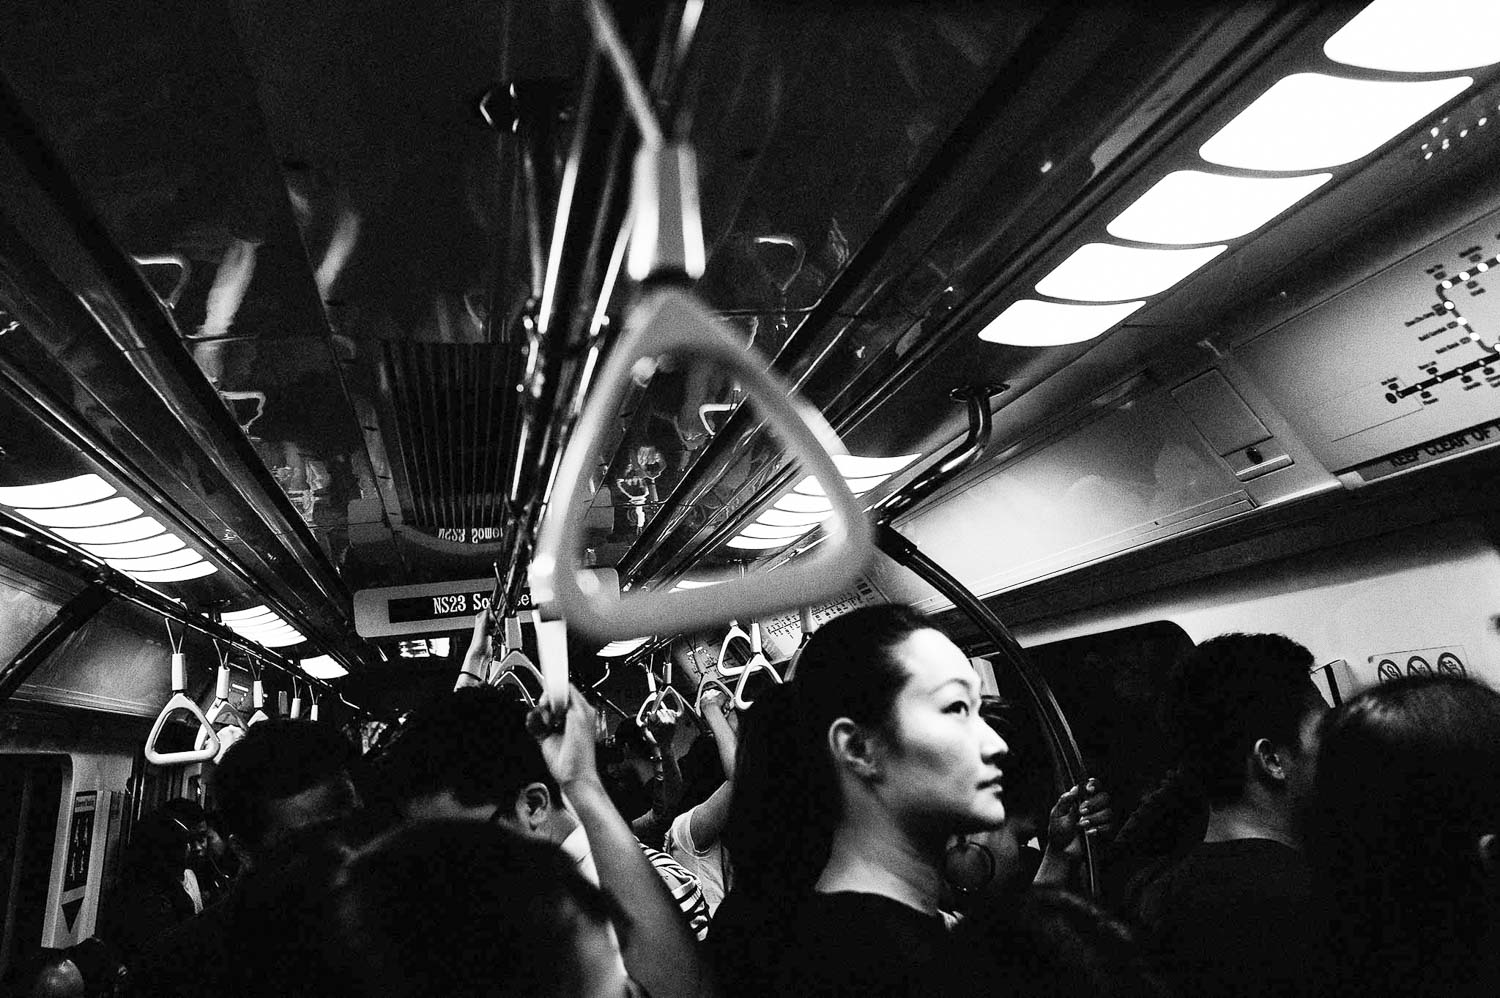 singapore-travel-photography-chye-seng-huat-mrt